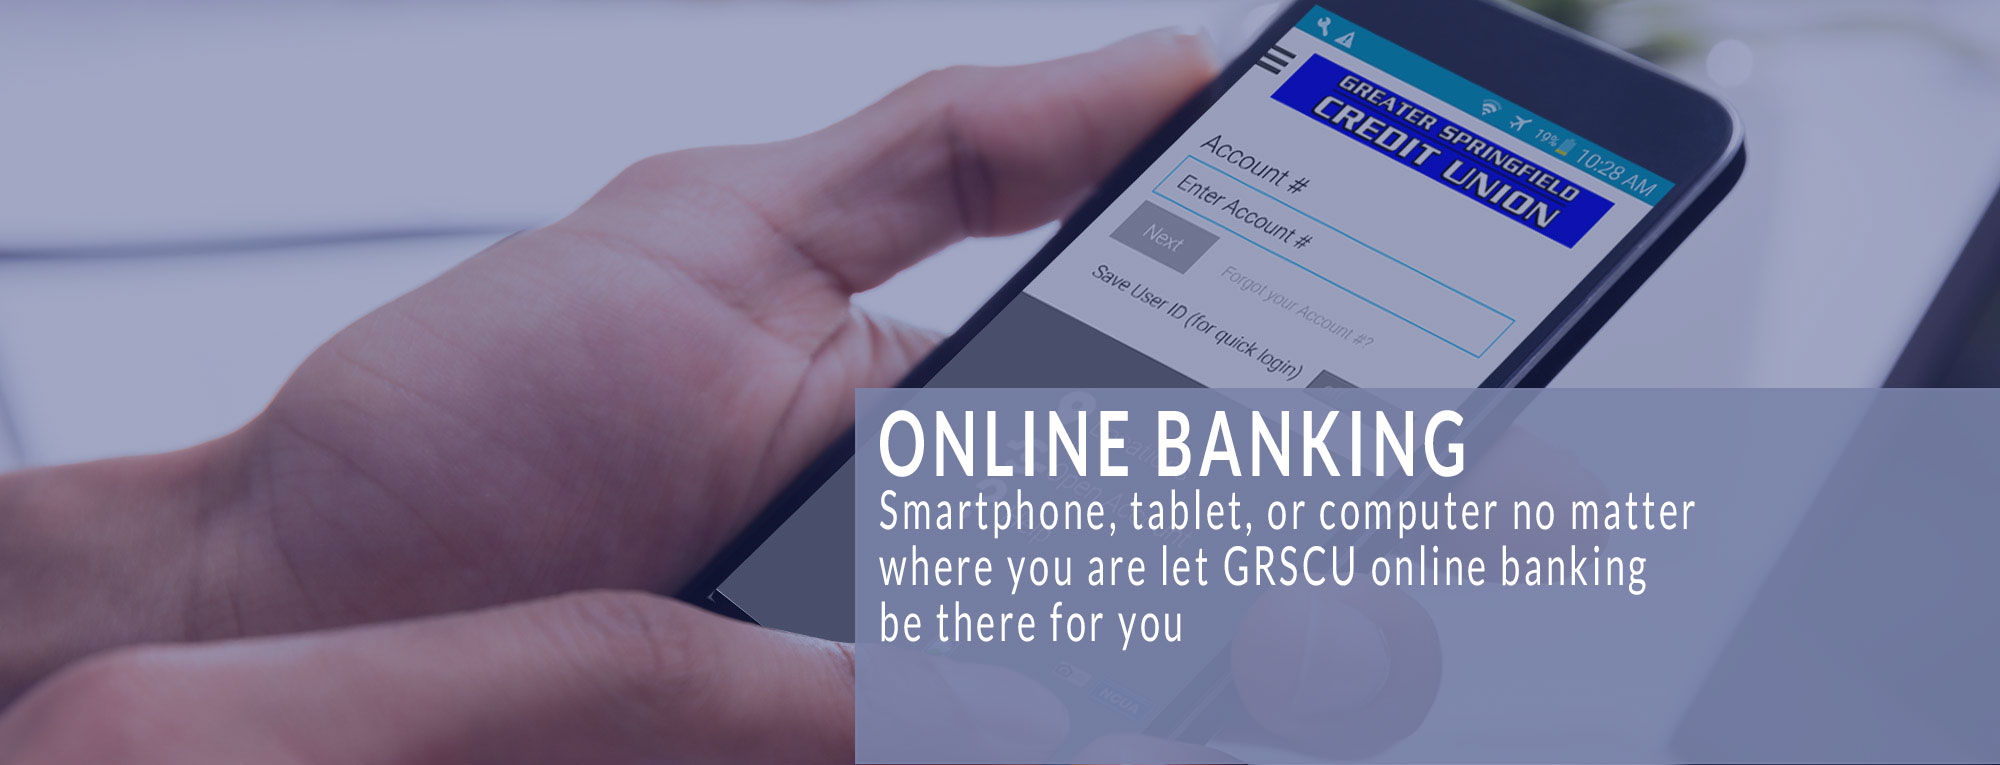 Online Banking - Smartphone, tablet, or computer no matter where you are let GRSCU onling banking be there for you.